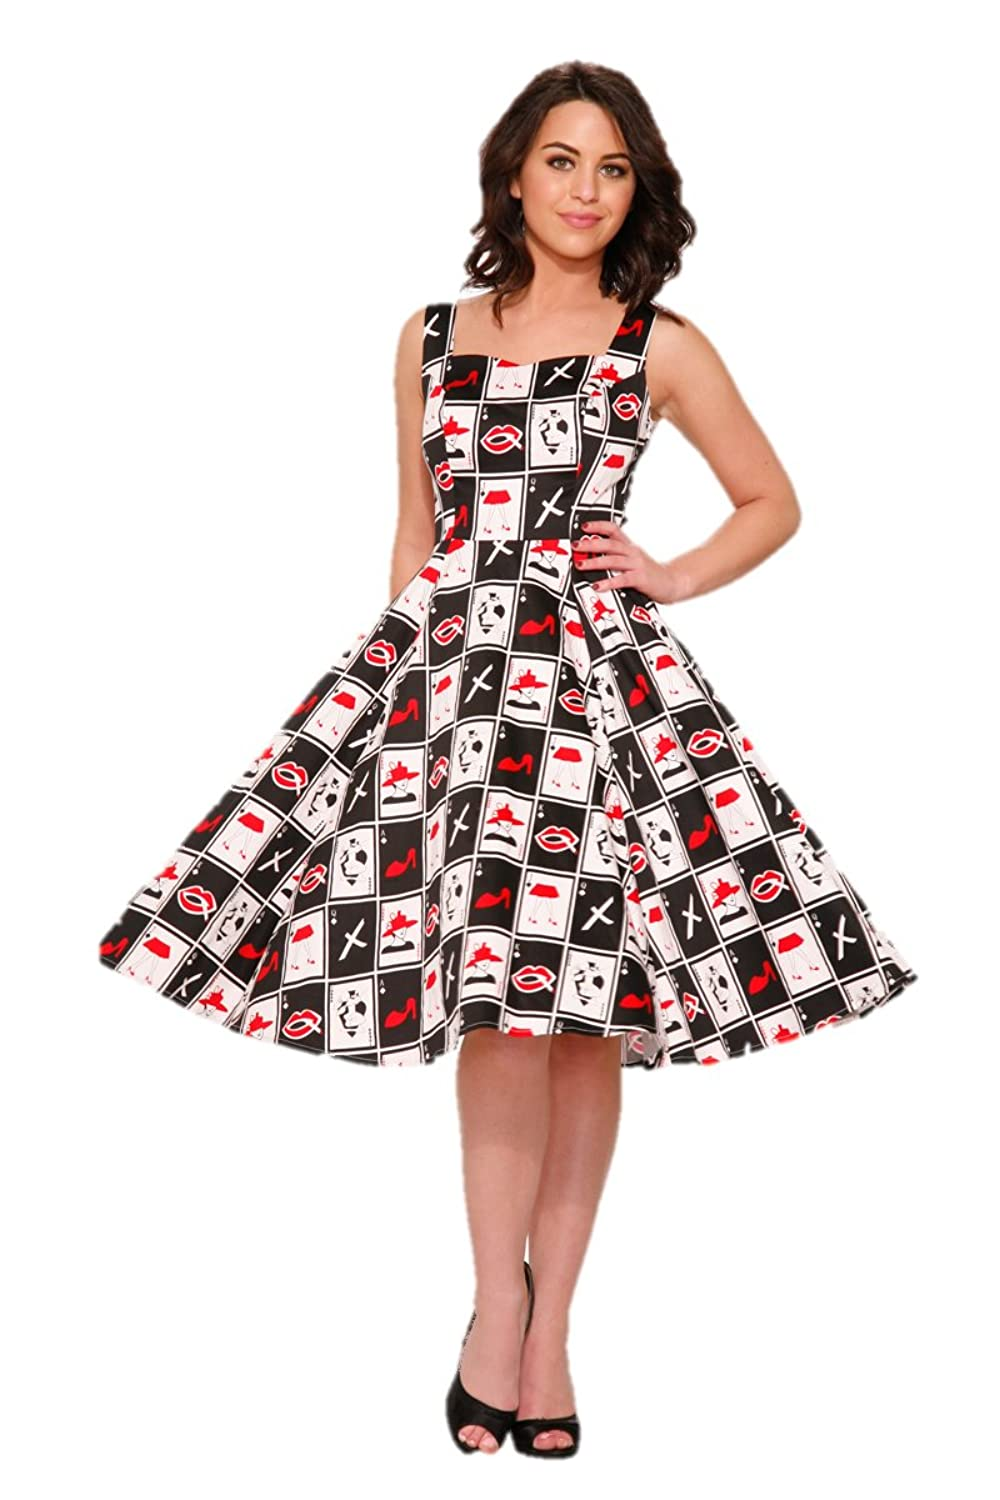 Rockabilly Dresses | Rockabilly Clothing | Viva Las Vegas Hearts & Roses Deuces Wild Dress (Shipped from US and US Sizes) $54.88 AT vintagedancer.com